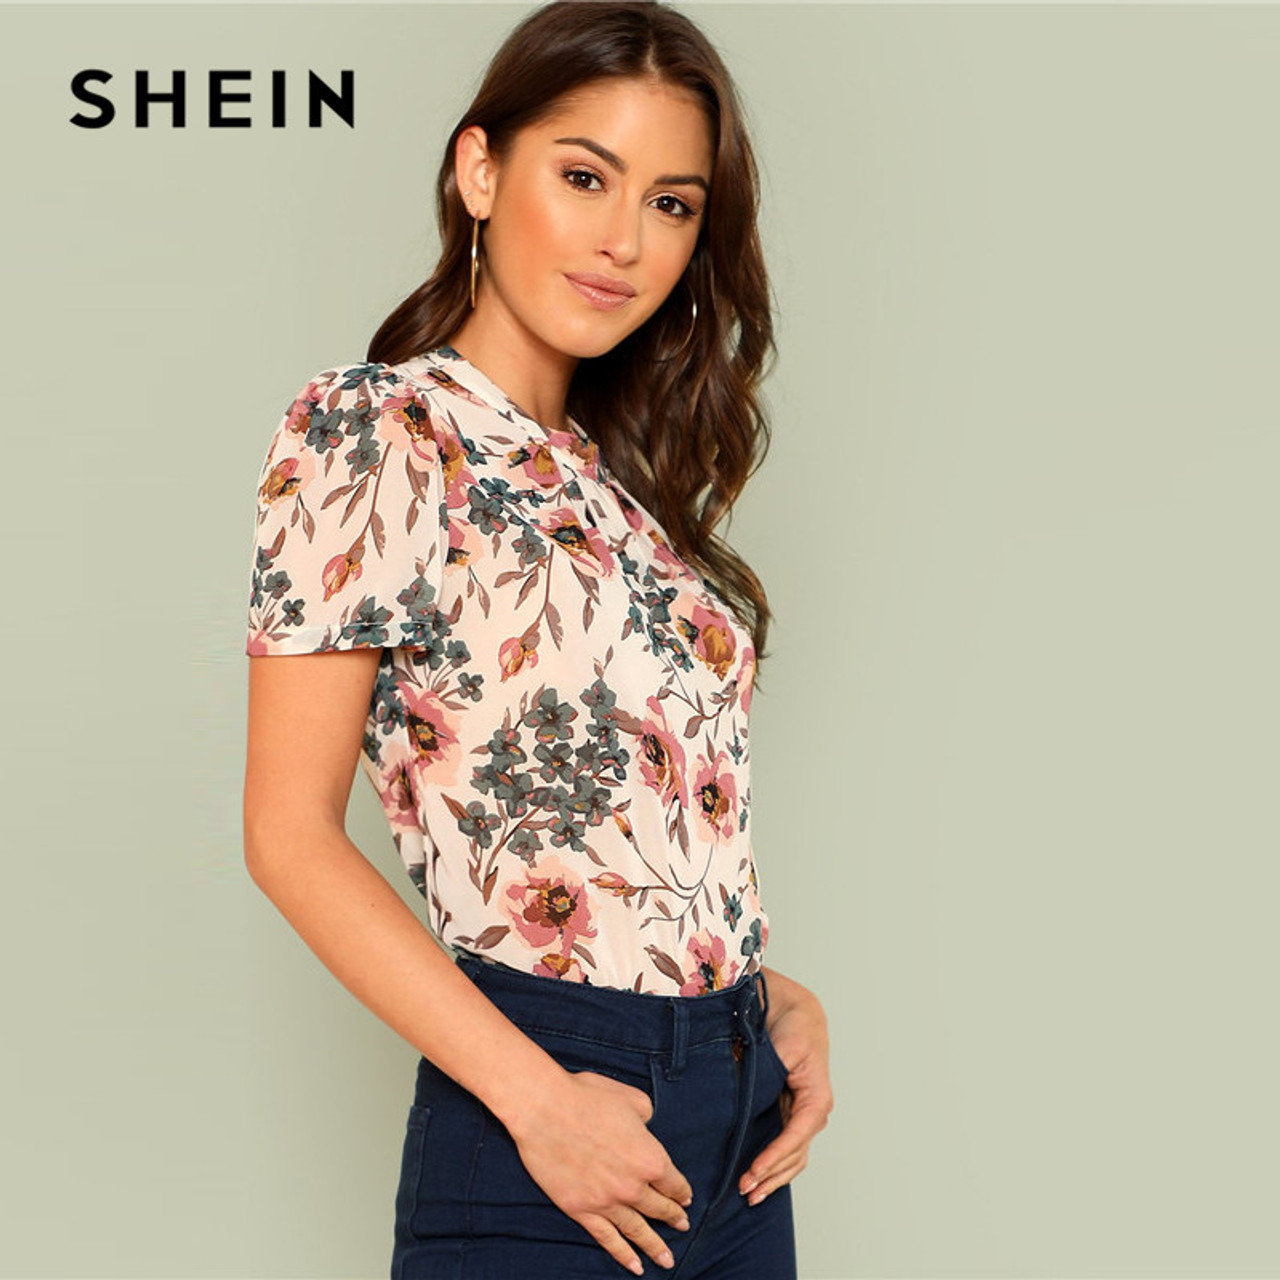 d3b1c30ce7 ... SHEIN Prairie Chic Boho Multicolor Floral Print Gathered Neck Puff Sleeve  Womens Tops and Blouses for ...